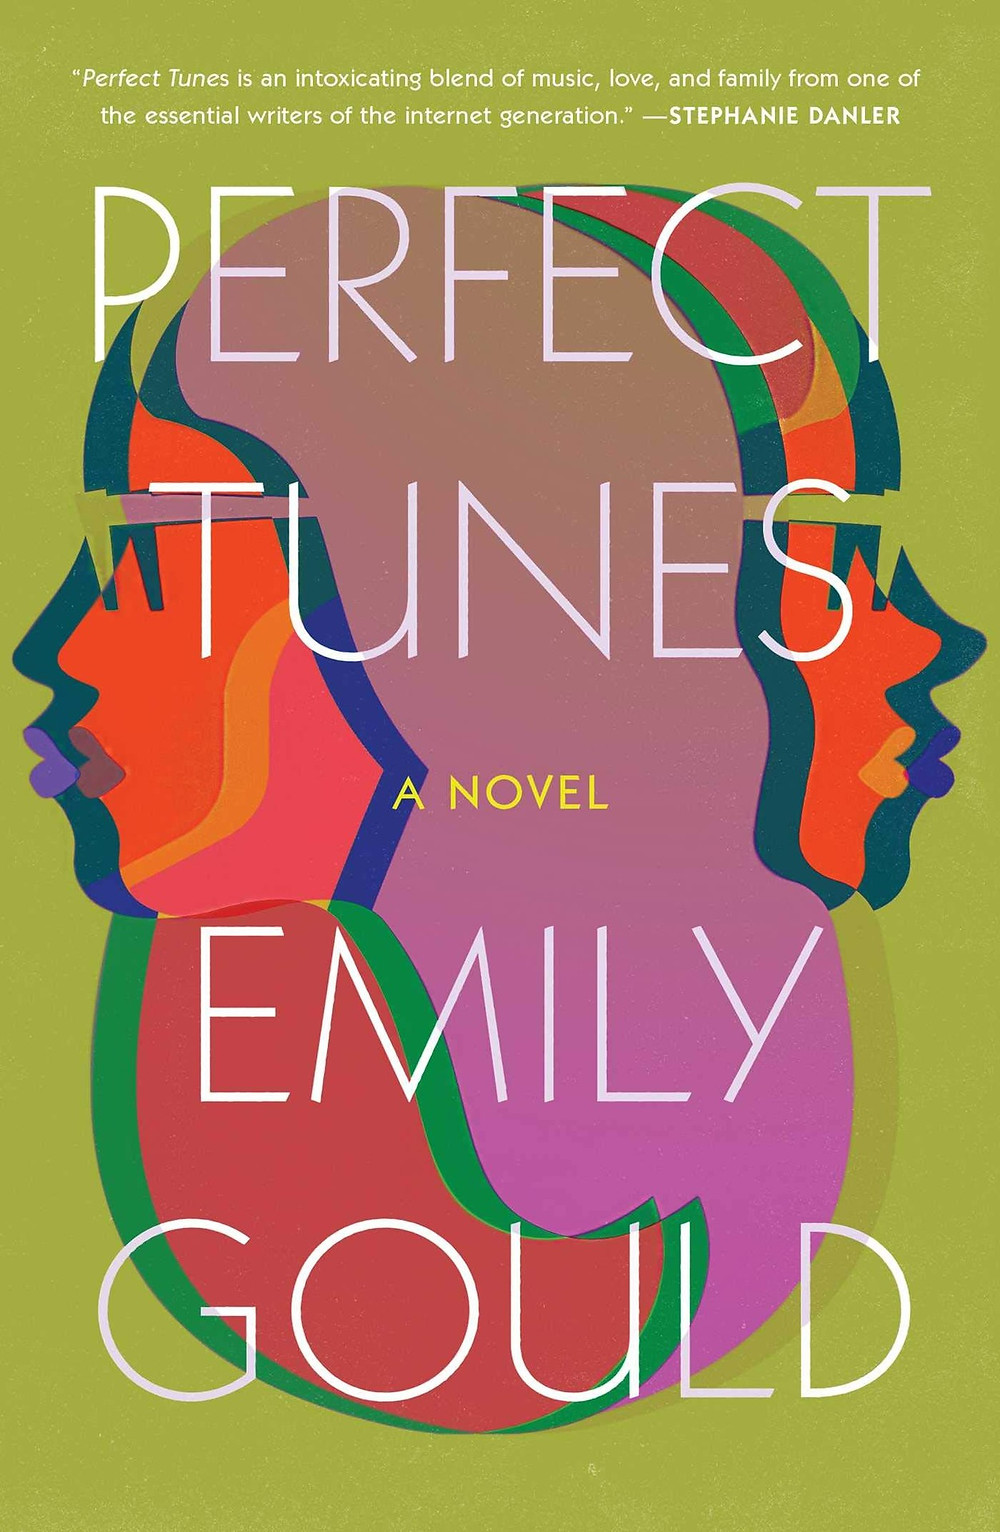 "Perfect Tunes Emily Gould ""Perfect Tunes is an intoxicating blend of music, love, and family from one of the essential writers of the internet generation."" --STEPHANIE DANLER ""Perfect Tunes is a zippy and profound story of love, loss, heredity, and par-enthood. I gulped it down, as will all mothers, New Yorkers, music fans, and lovers of quick-moving novels that are both funny and deep. I loved every page."" --EMMA STRAUB ""Perfect Tunes is mind-blowing....Full of unspeakable insights, or at least I thought they were unspeakable, but there they are. Now I want everyone I know to read this book and talk about it with me."" --ELIF BATUMAN Have you ever wondered what your mother was like before she became your mother, and what she gave up in order to have you? It's the early days of the new millennium, and Laura has arrived in New York City's East Village in the hopes of recording her first album. A songwriter with a one-of-a-kind talent, she's just beginning to book gigs with her beautiful best friend when she falls hard for a troubled but magnetic musician whose star is on the rise. Their time together is stormy and short-lived--but will reverberate for the rest of Laura's life. Fifteen years later, Laura's teenage daughter, Marie, is asking questions about her father, questions that Laura does not want to answer. Laura has built a stable life in Brooklyn that bears little resemblance to the one she envisioned when she left Ohio all those years ago, and she's taken pains to close the door on what was and what might have been. But neither her best friend, now a famous musician who relies on Laura's songwriting skills, nor her depressed and searching daughter will let her give up on her dreams. Funny, wise, and tenderhearted, Perfect Tunes explores the fault lines in our most important relationships, and asks whether dreams deferred can ever be reclaimed. It is a delightful and poignant tale of music and motherhood, ambition and com-promise--of life, in all its dissonance and harmony. thebookslut book reviews the bookslut Publisher: Avid Reader Press / Simon & Schuster Published Date: April 14, 2020 Pages: 288 Dimensions: 5.7 X 1.2 X 8.1 inches 